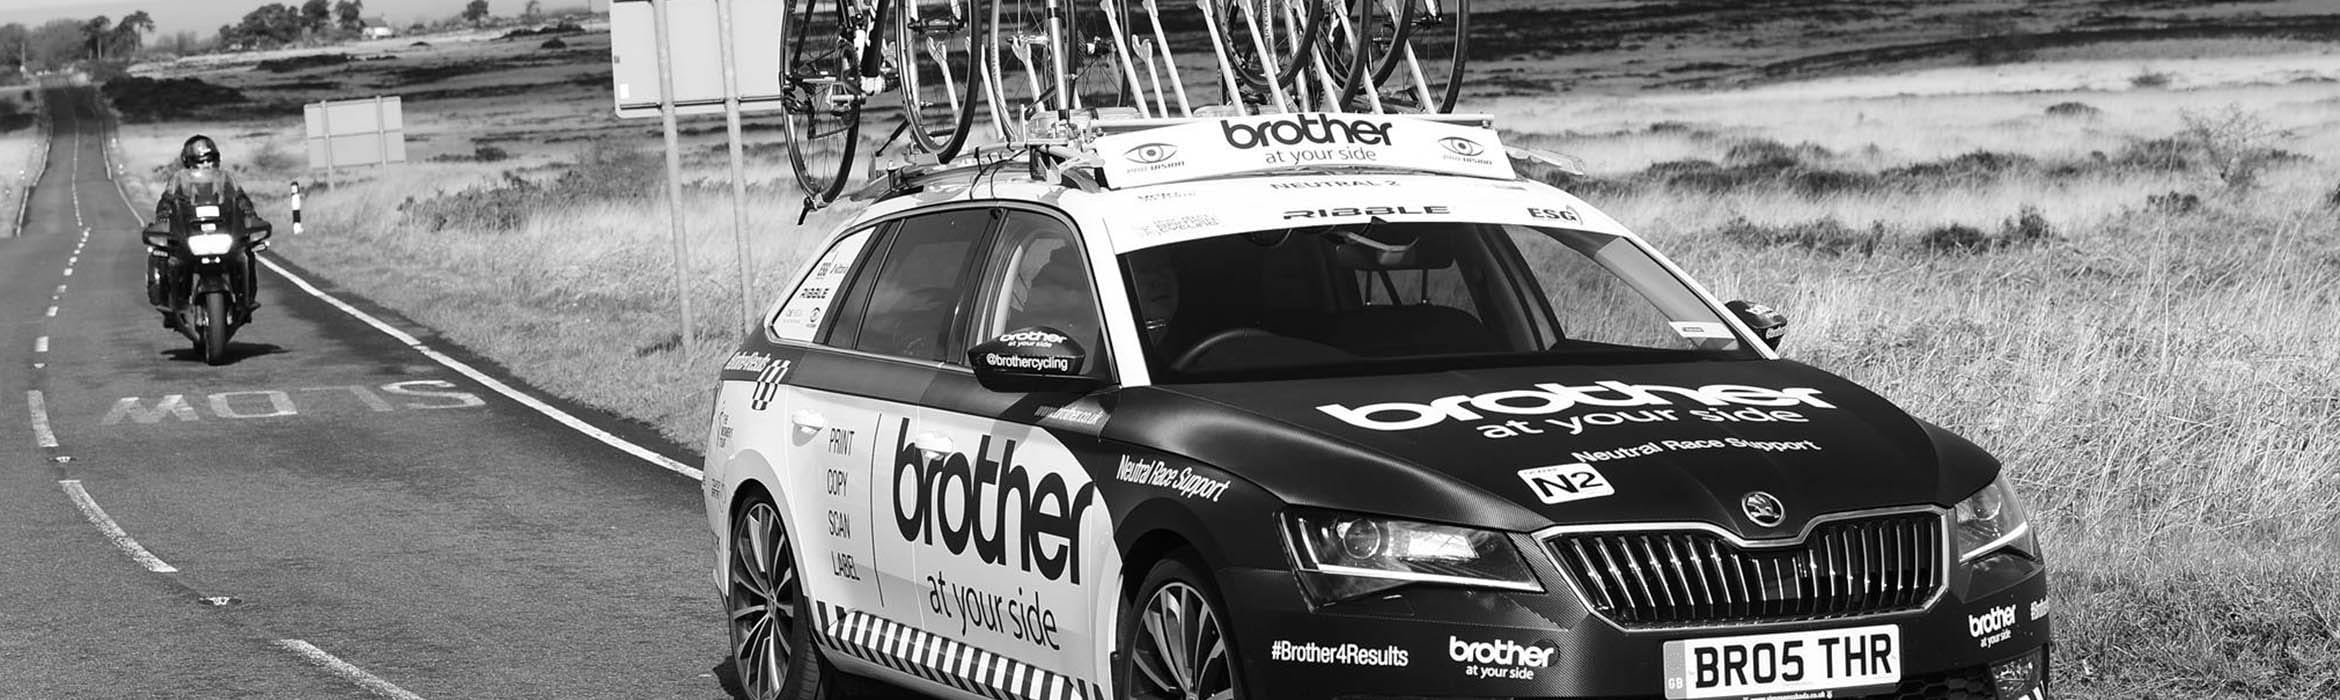 brother cycling support car